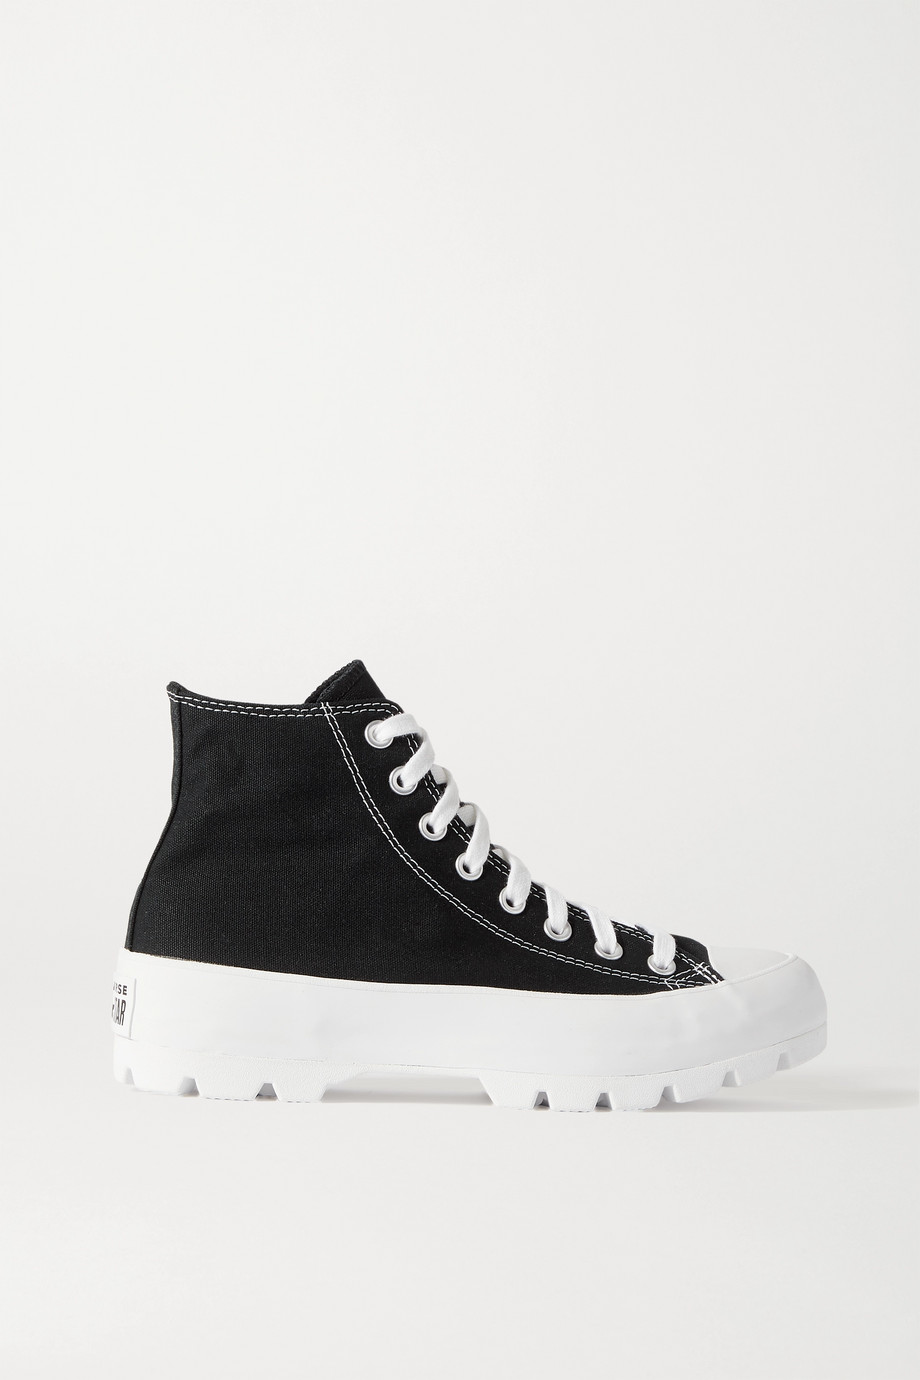 Converse Chuck Taylor All Star canvas high-top platform sneakers